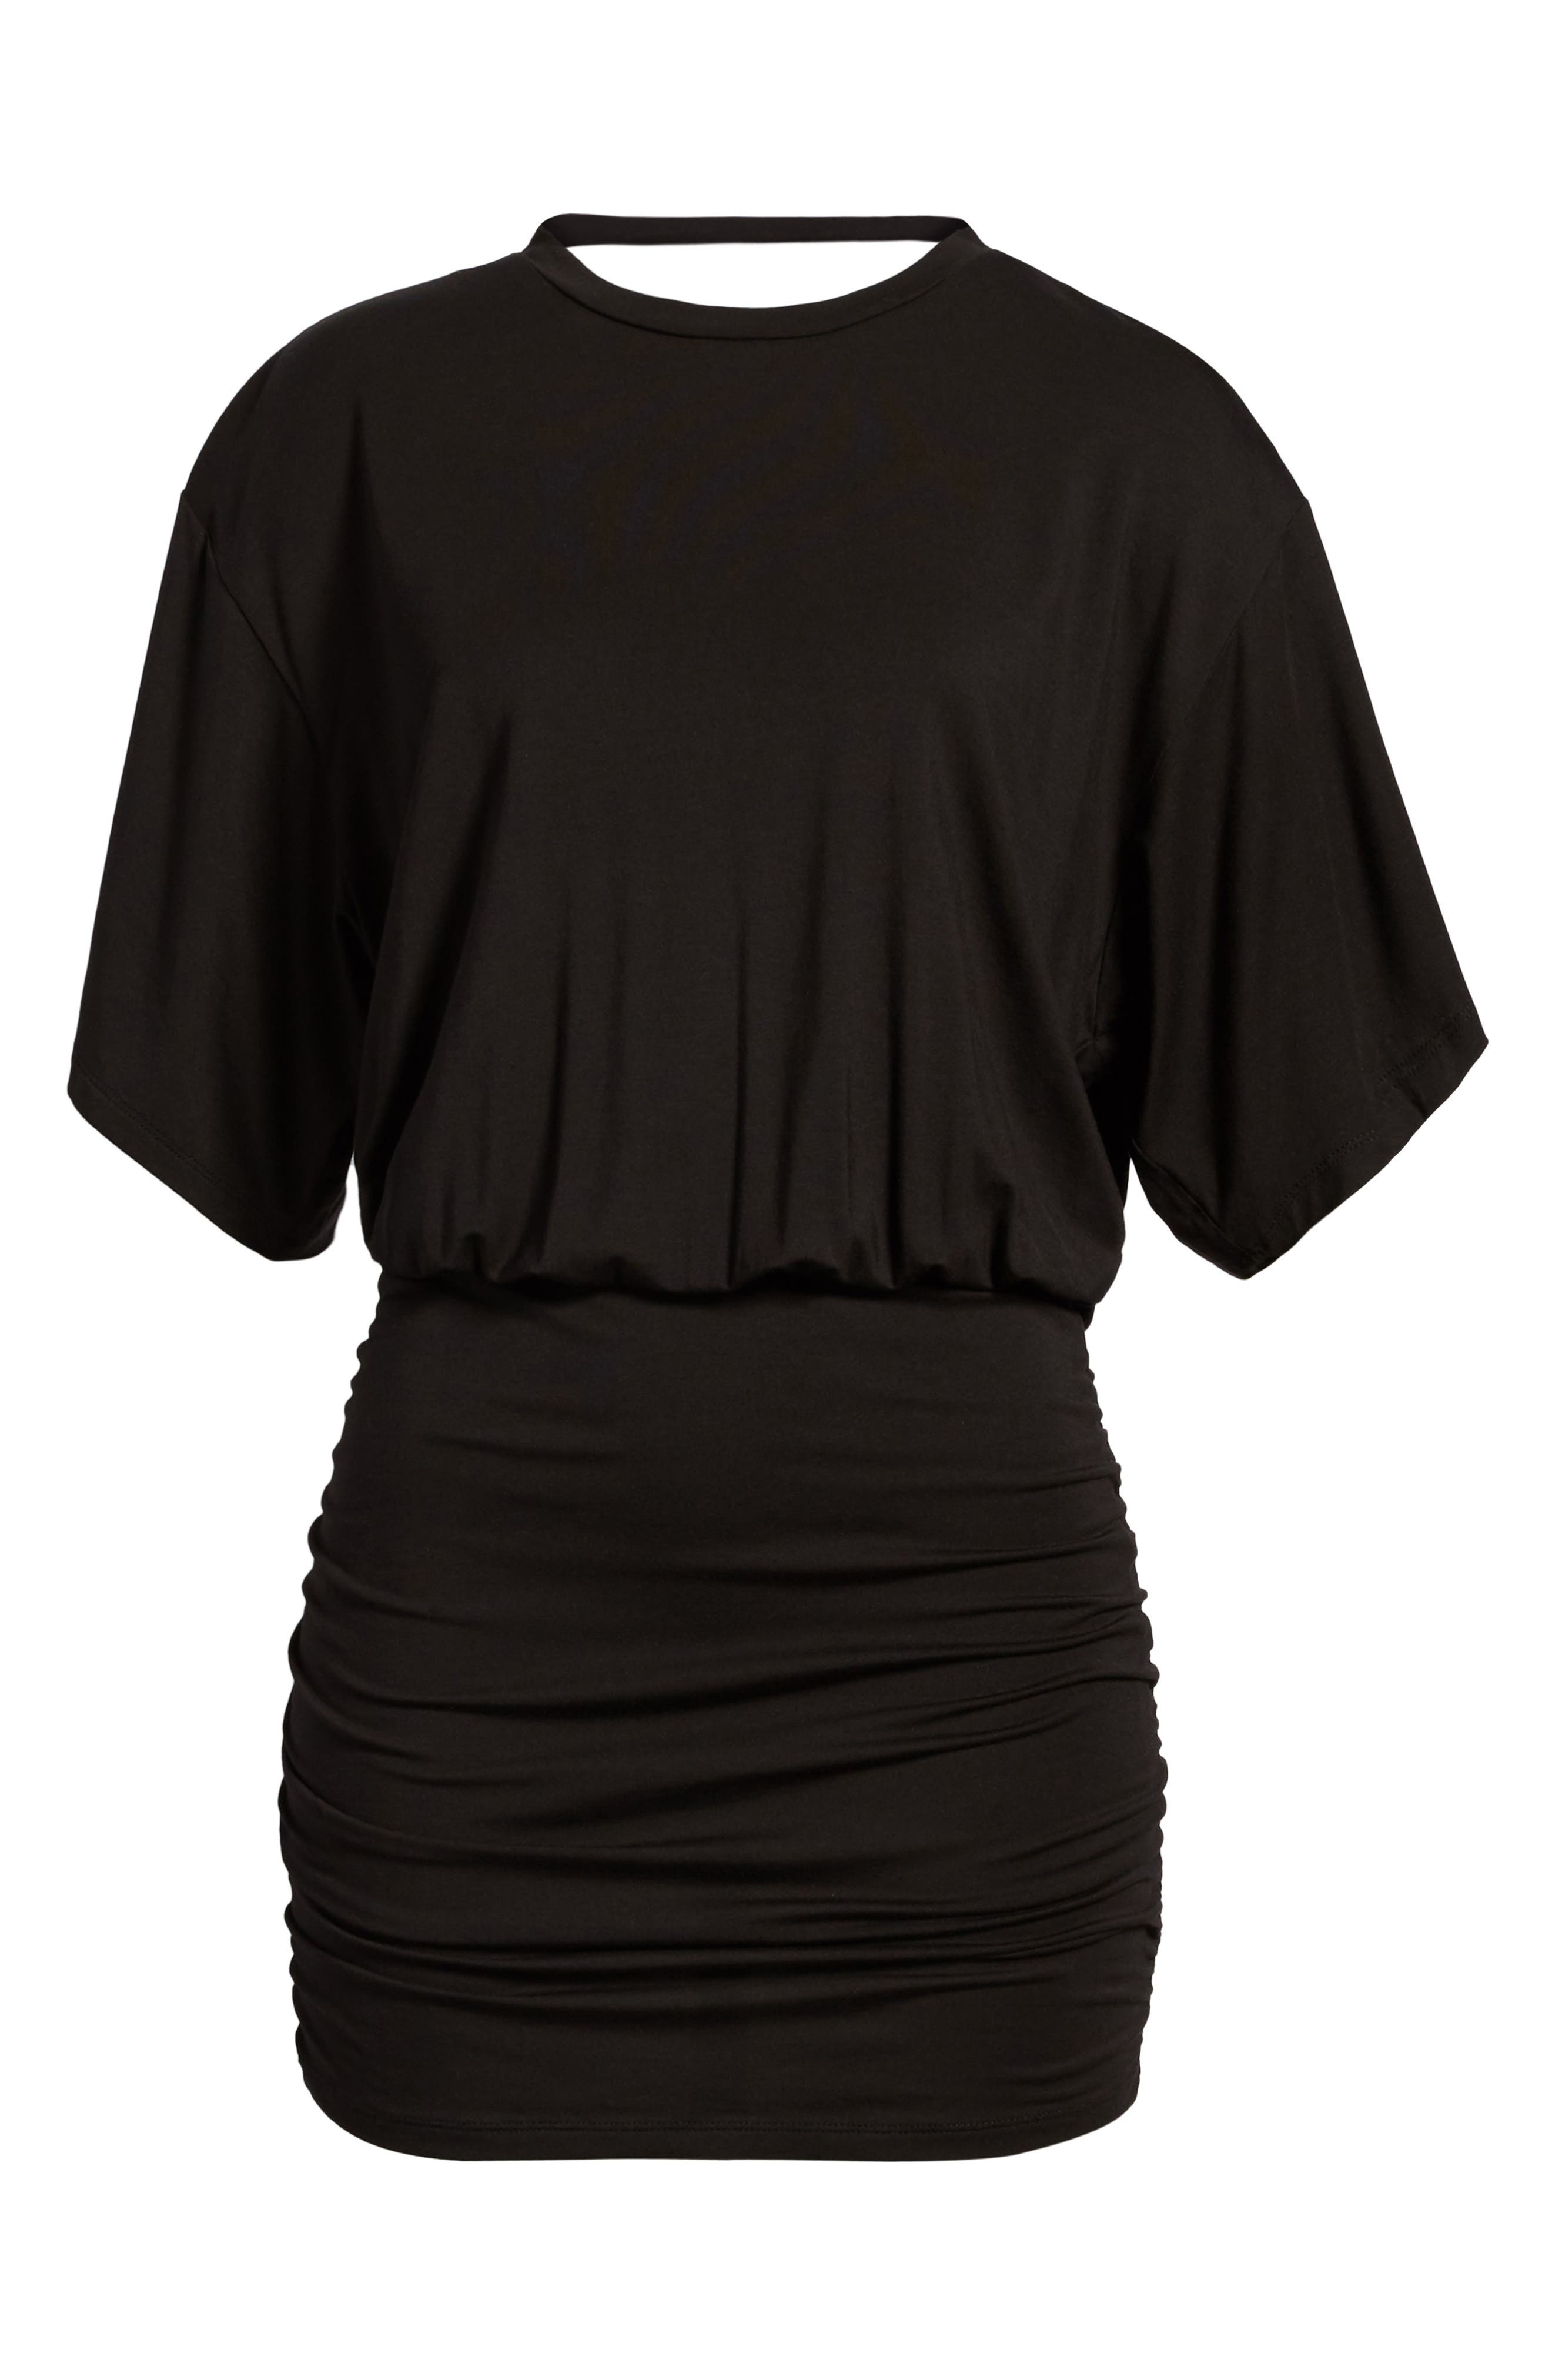 KENDALL + KYLIE,                             Open Back T-Shirt Dress,                             Alternate thumbnail 7, color,                             001